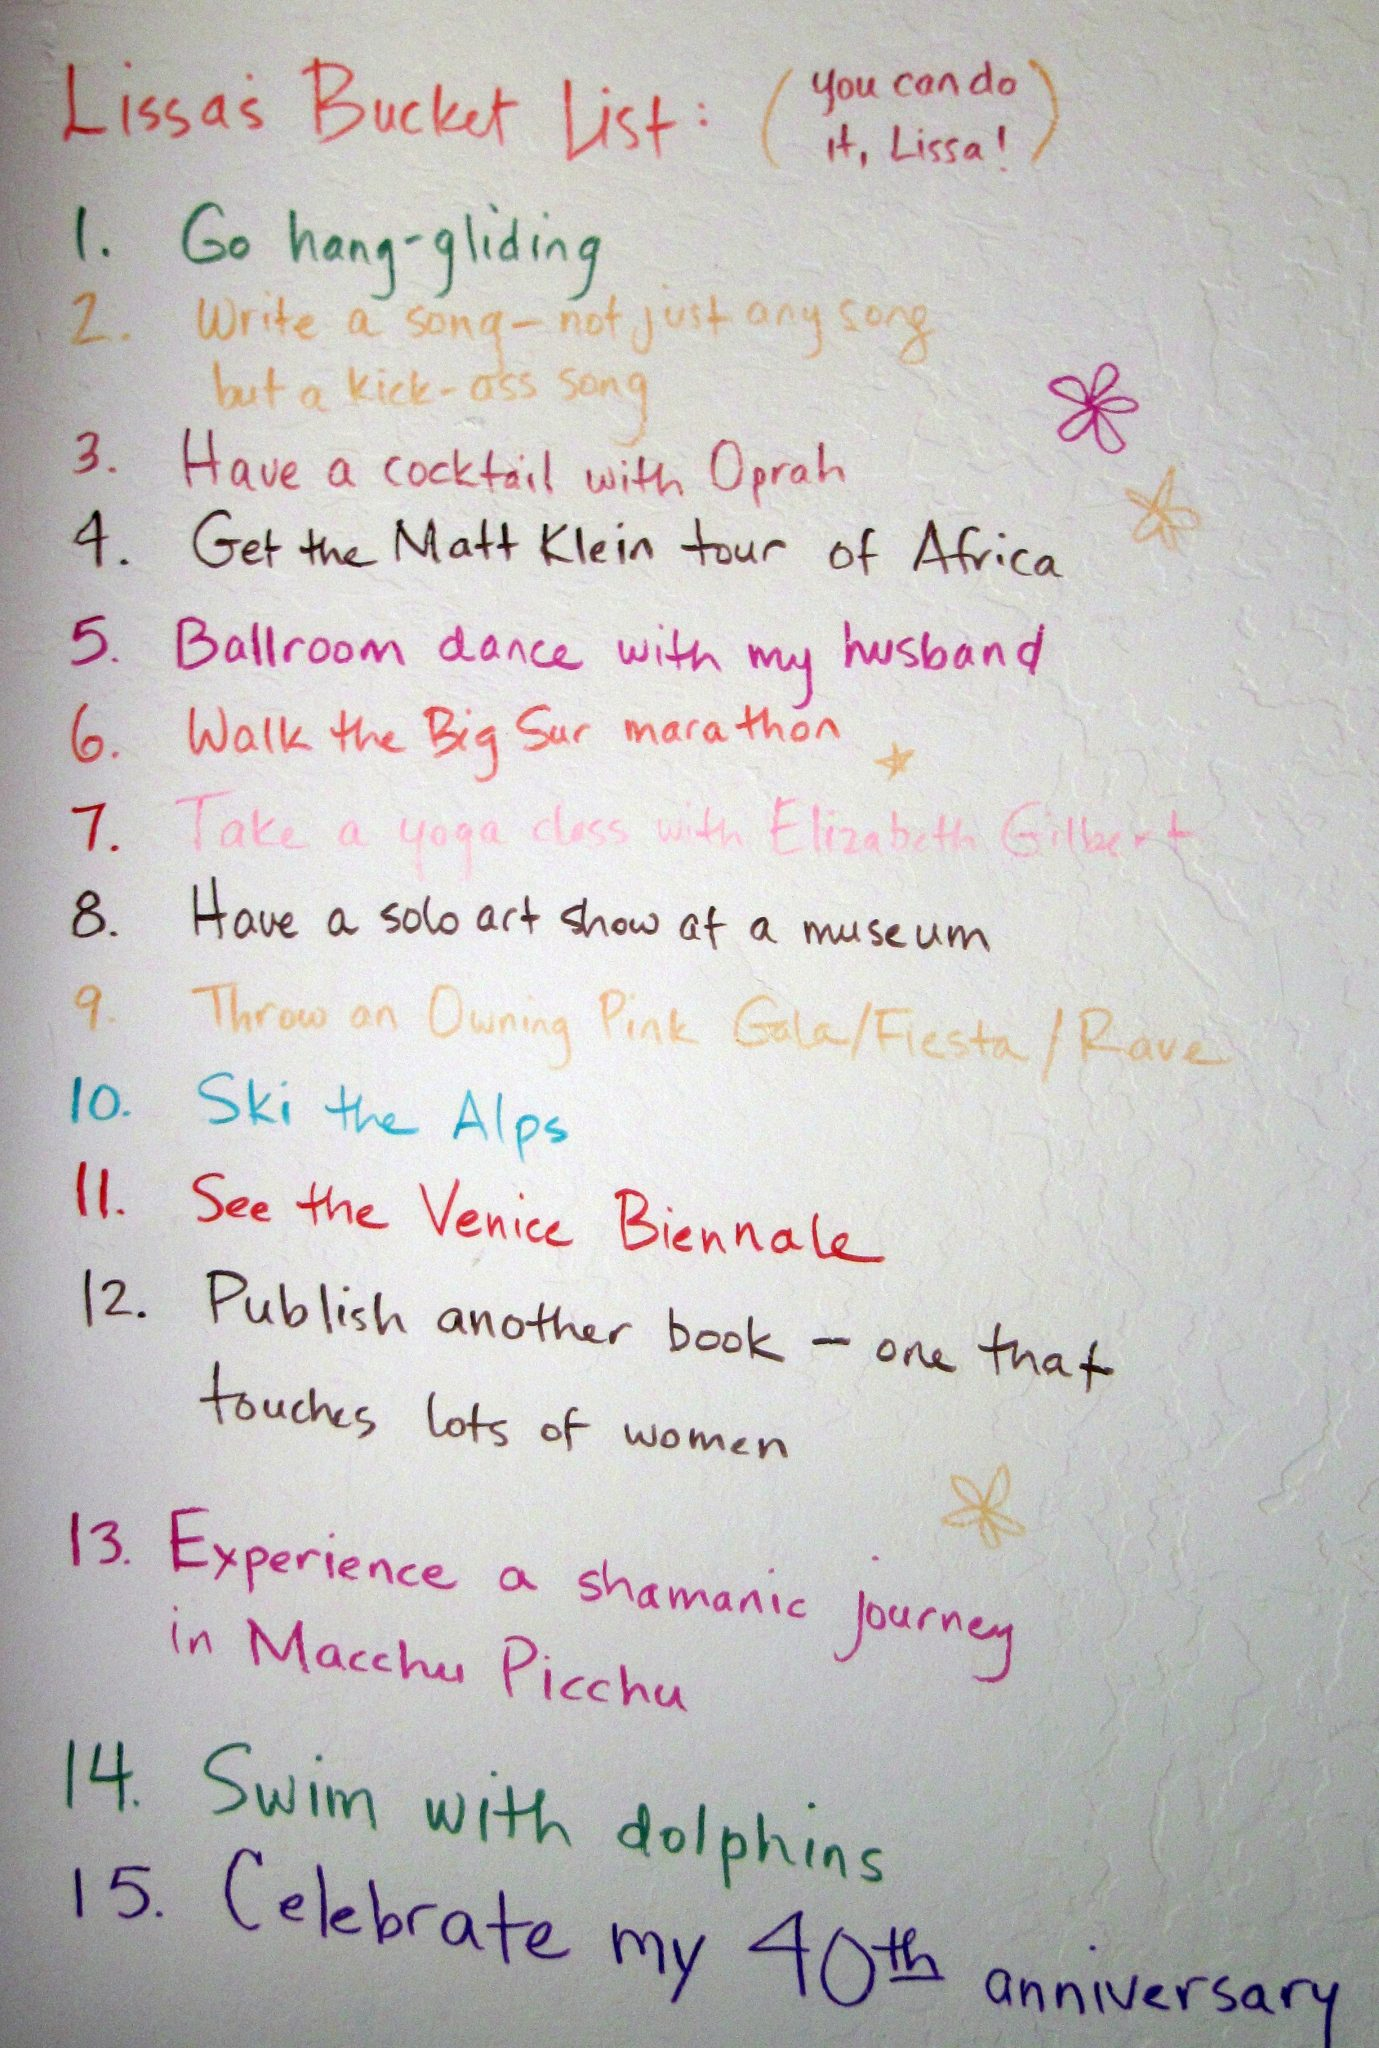 the bucket list 2 essay What's on your bucket list adventure travel, volunteerism, crazy fun, connecting  with nature 1000+ awesome ideas of things to do before you.